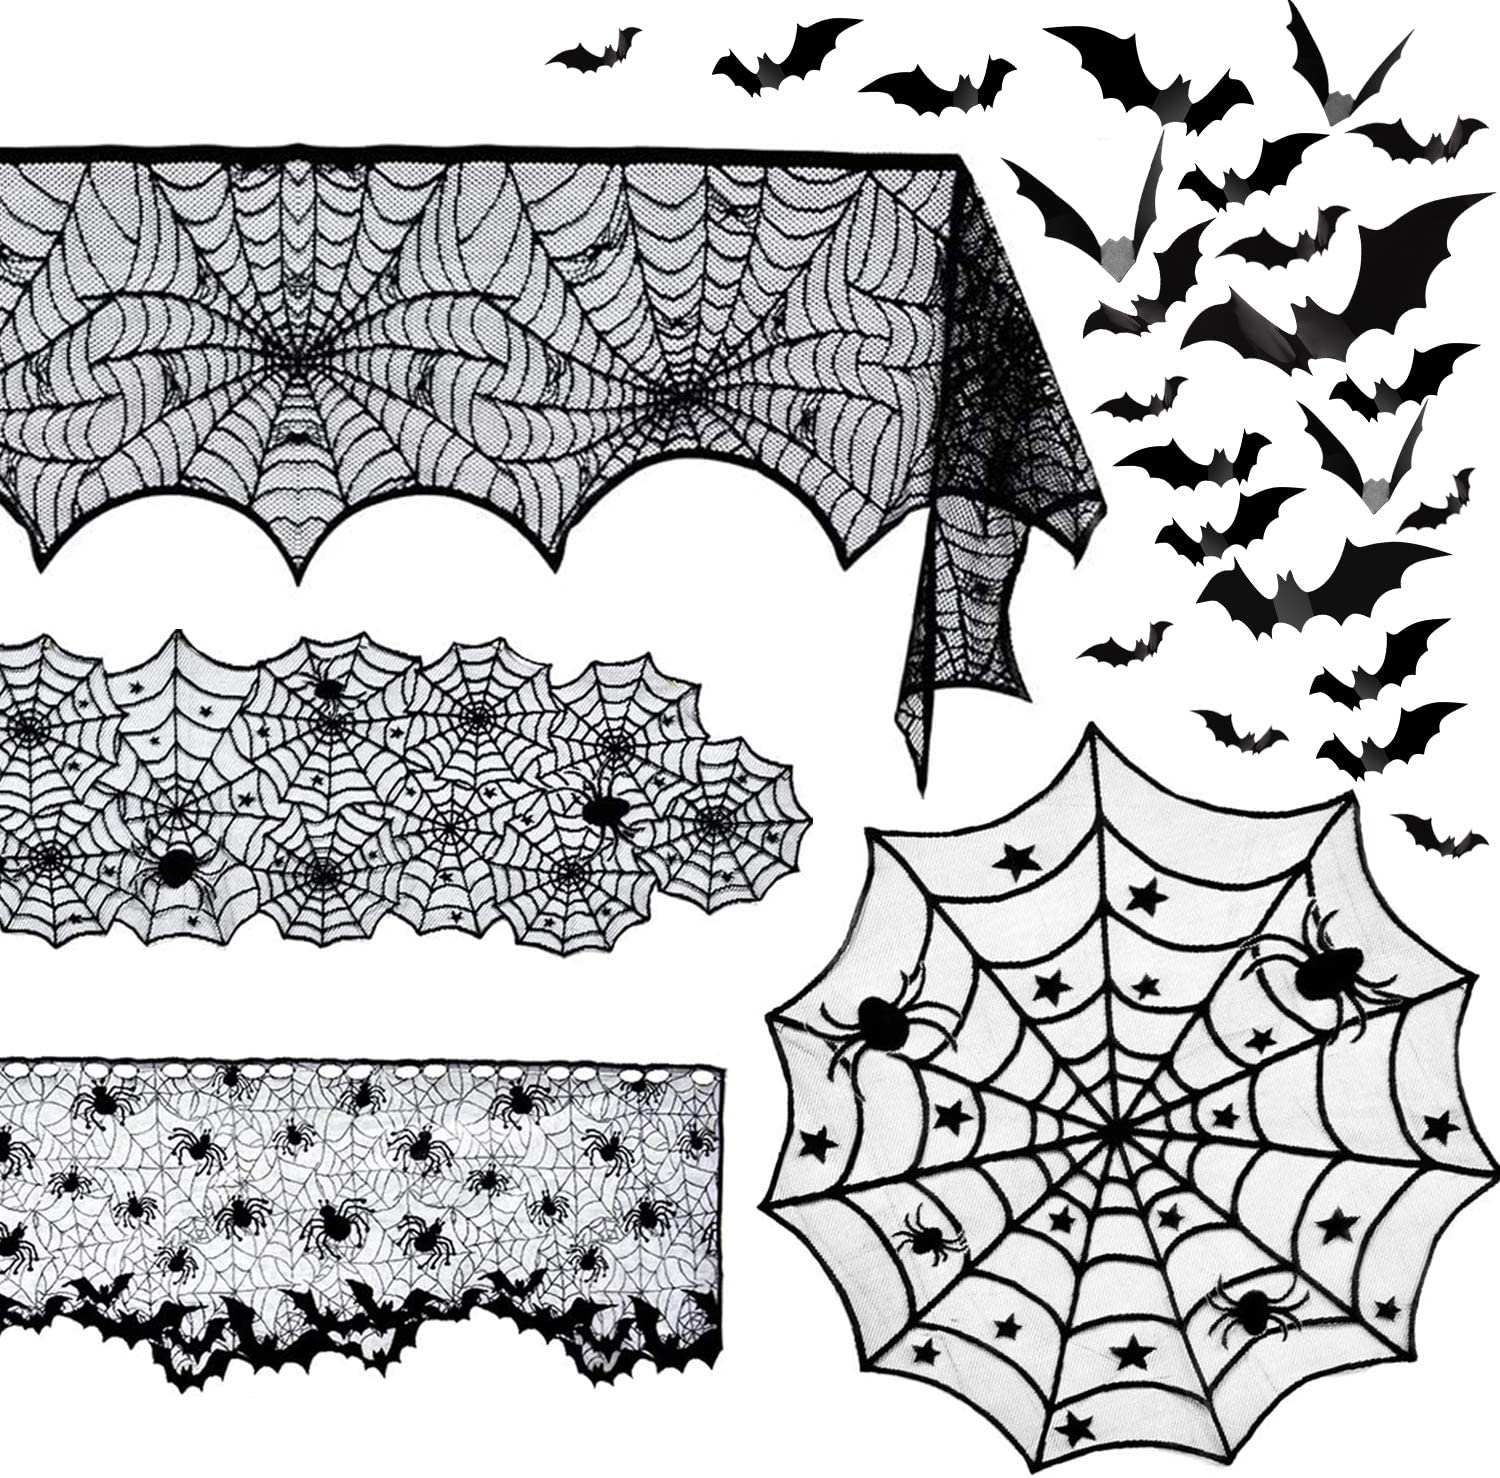 5 Pack Halloween Spider Decorations Sets -Halloween Fireplace Mantel Scarf & Round Table Cover & Lace Table Runner & Cobweb Lampshade & 60 pcs Scary 3D Bat for Halloween Party Decors